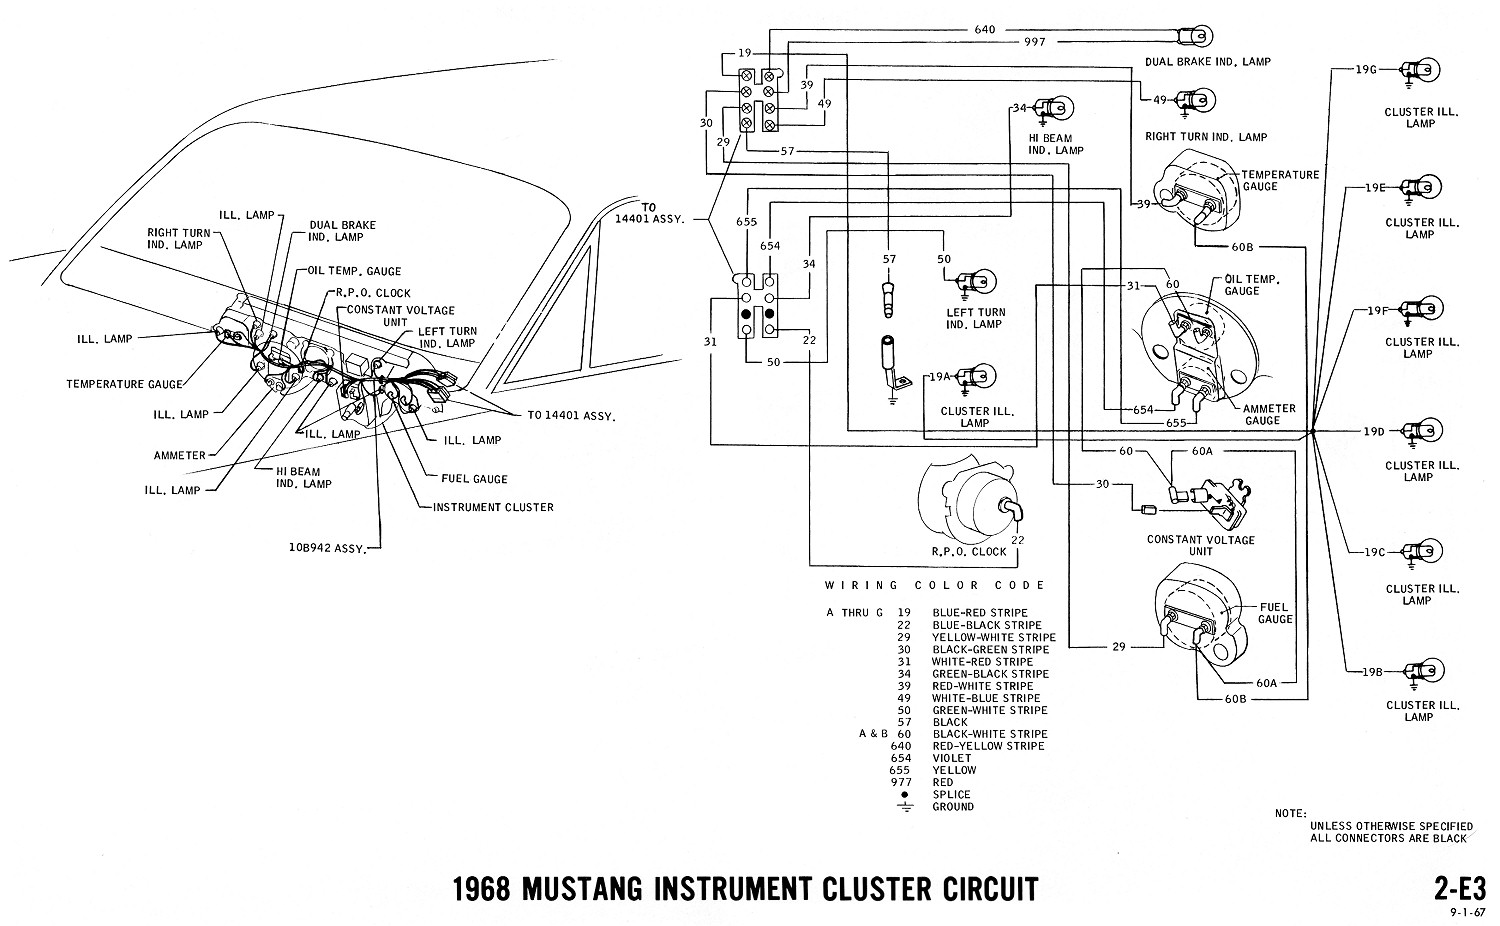 E3 1968 mustang wiring diagrams evolving software 1968 camaro gauge cluster wiring diagram at bayanpartner.co